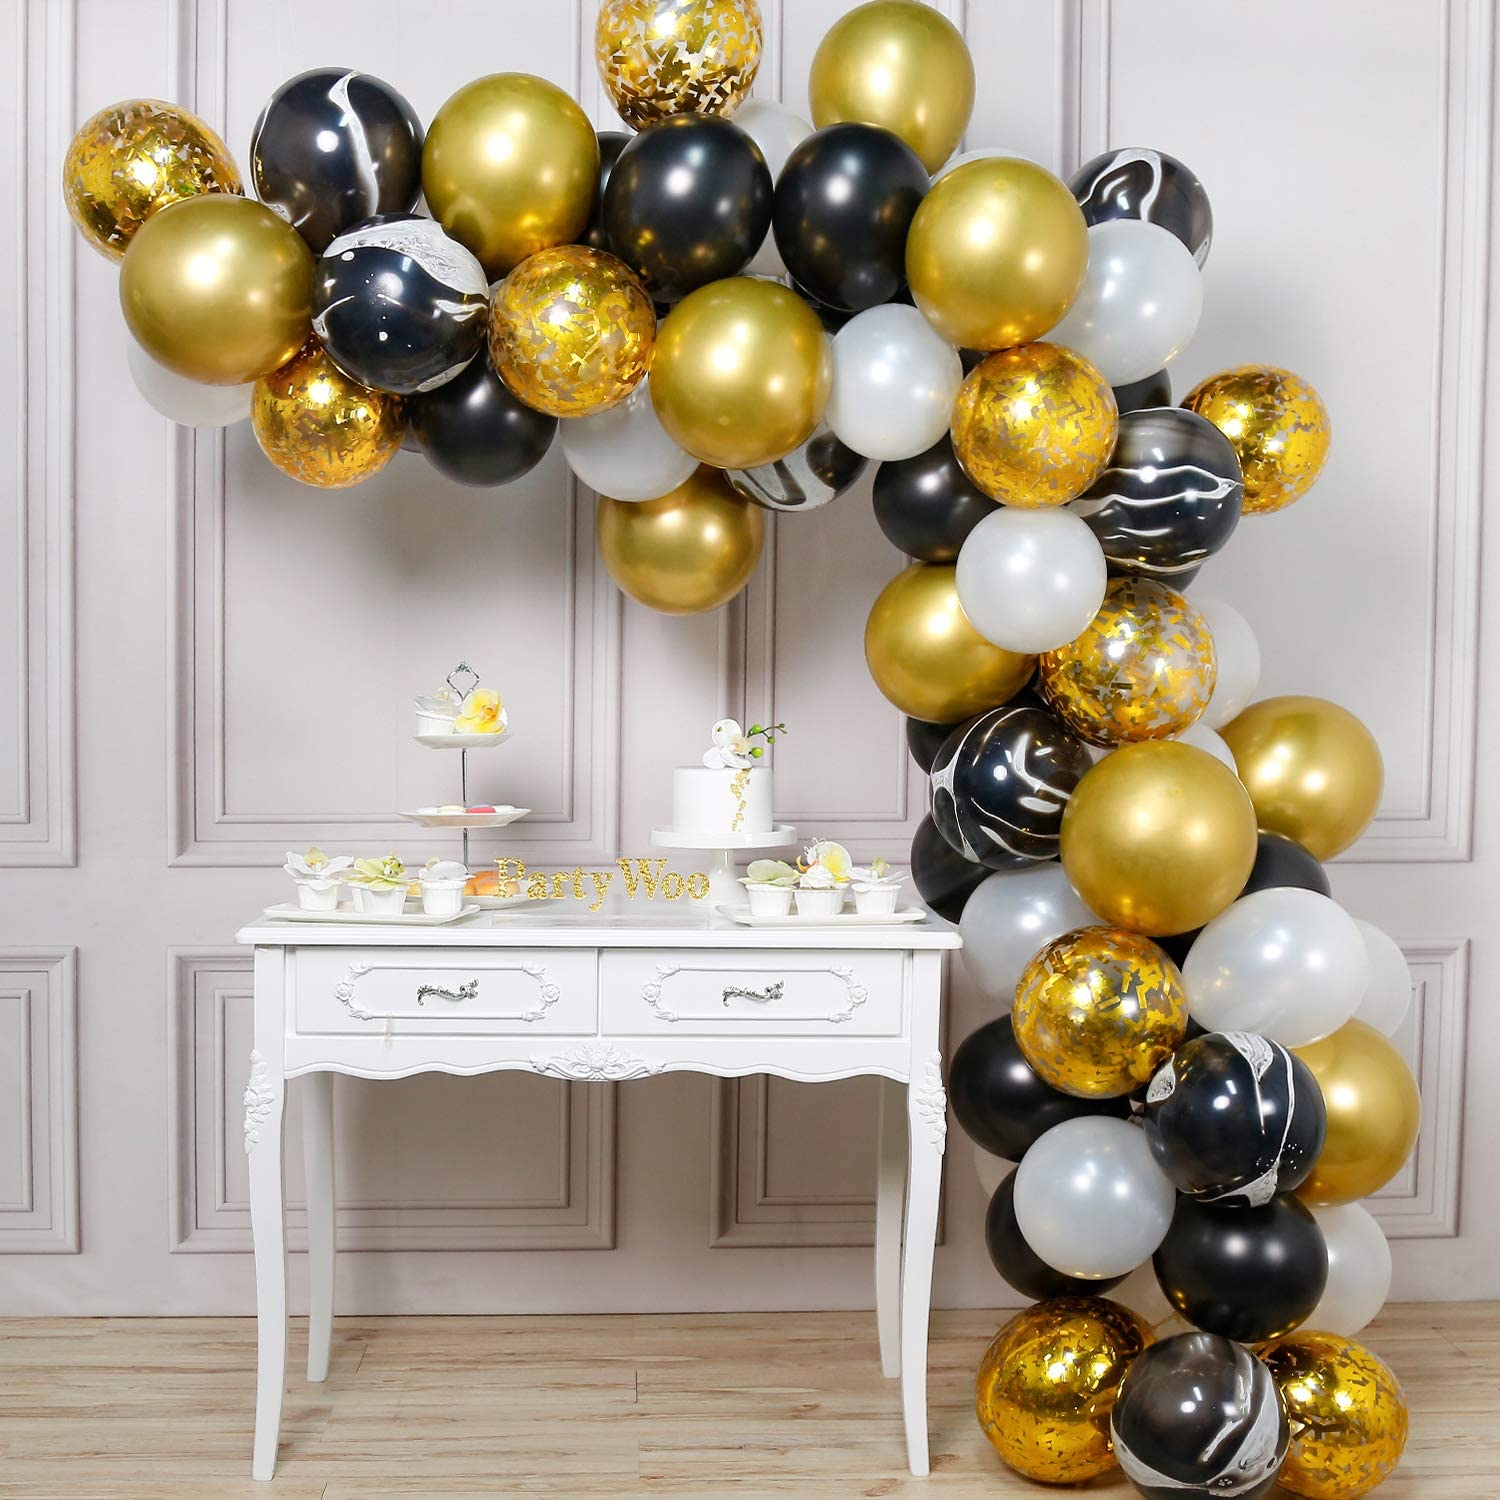 PartyWoo Gold and Black Balloons, 6 pcs Black Balloons, White Balloons,  Black Marble Balloons, Gold Metallic Balloons, Gold Confetti Balloons for